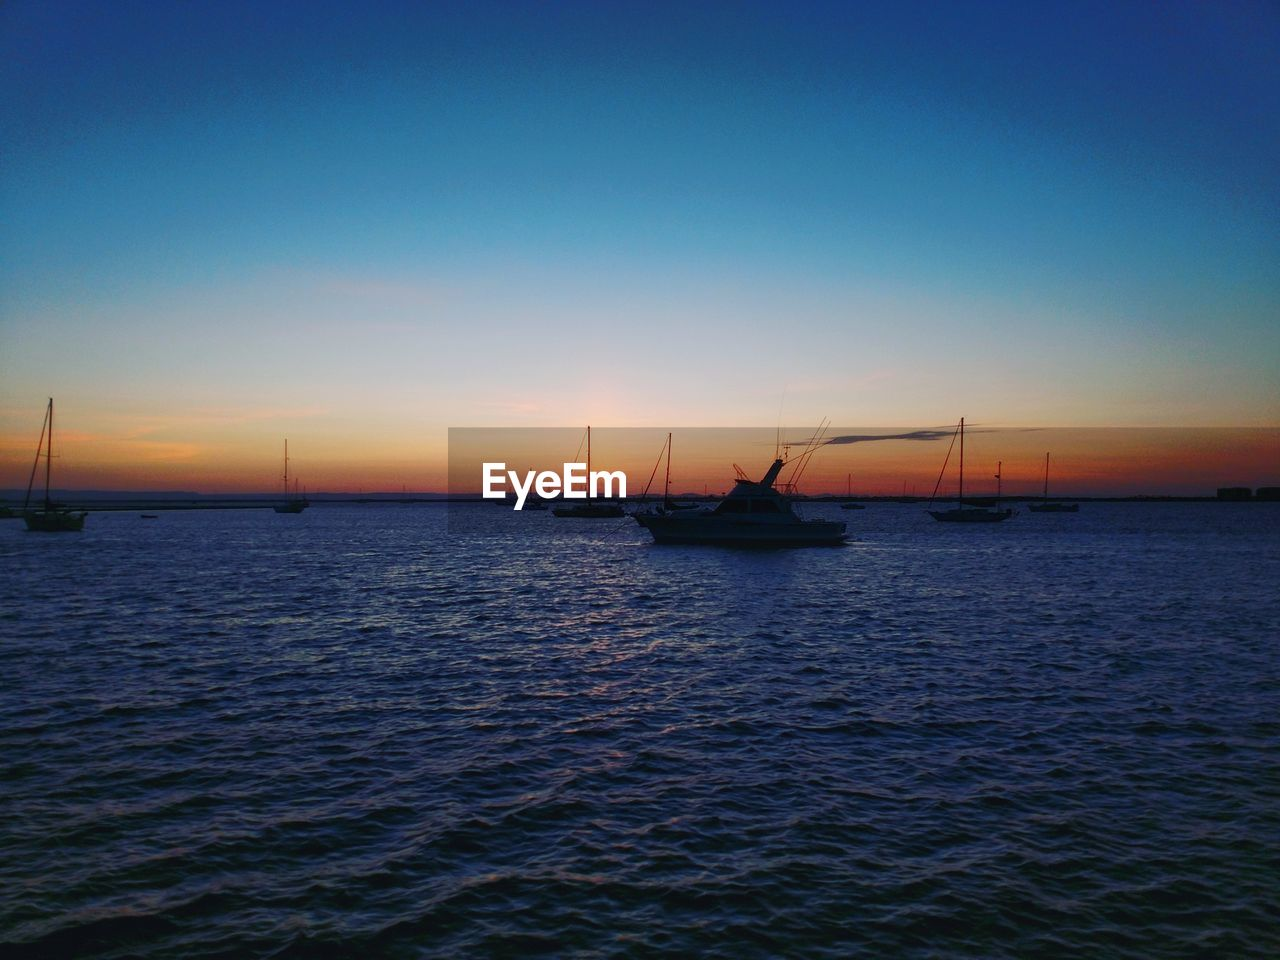 sunset, water, sea, nautical vessel, transportation, mode of transport, boat, nature, waterfront, scenics, outdoors, beauty in nature, tranquility, no people, tranquil scene, silhouette, rippled, sky, blue, mast, sailing, sailboat, horizon over water, clear sky, harbor, day